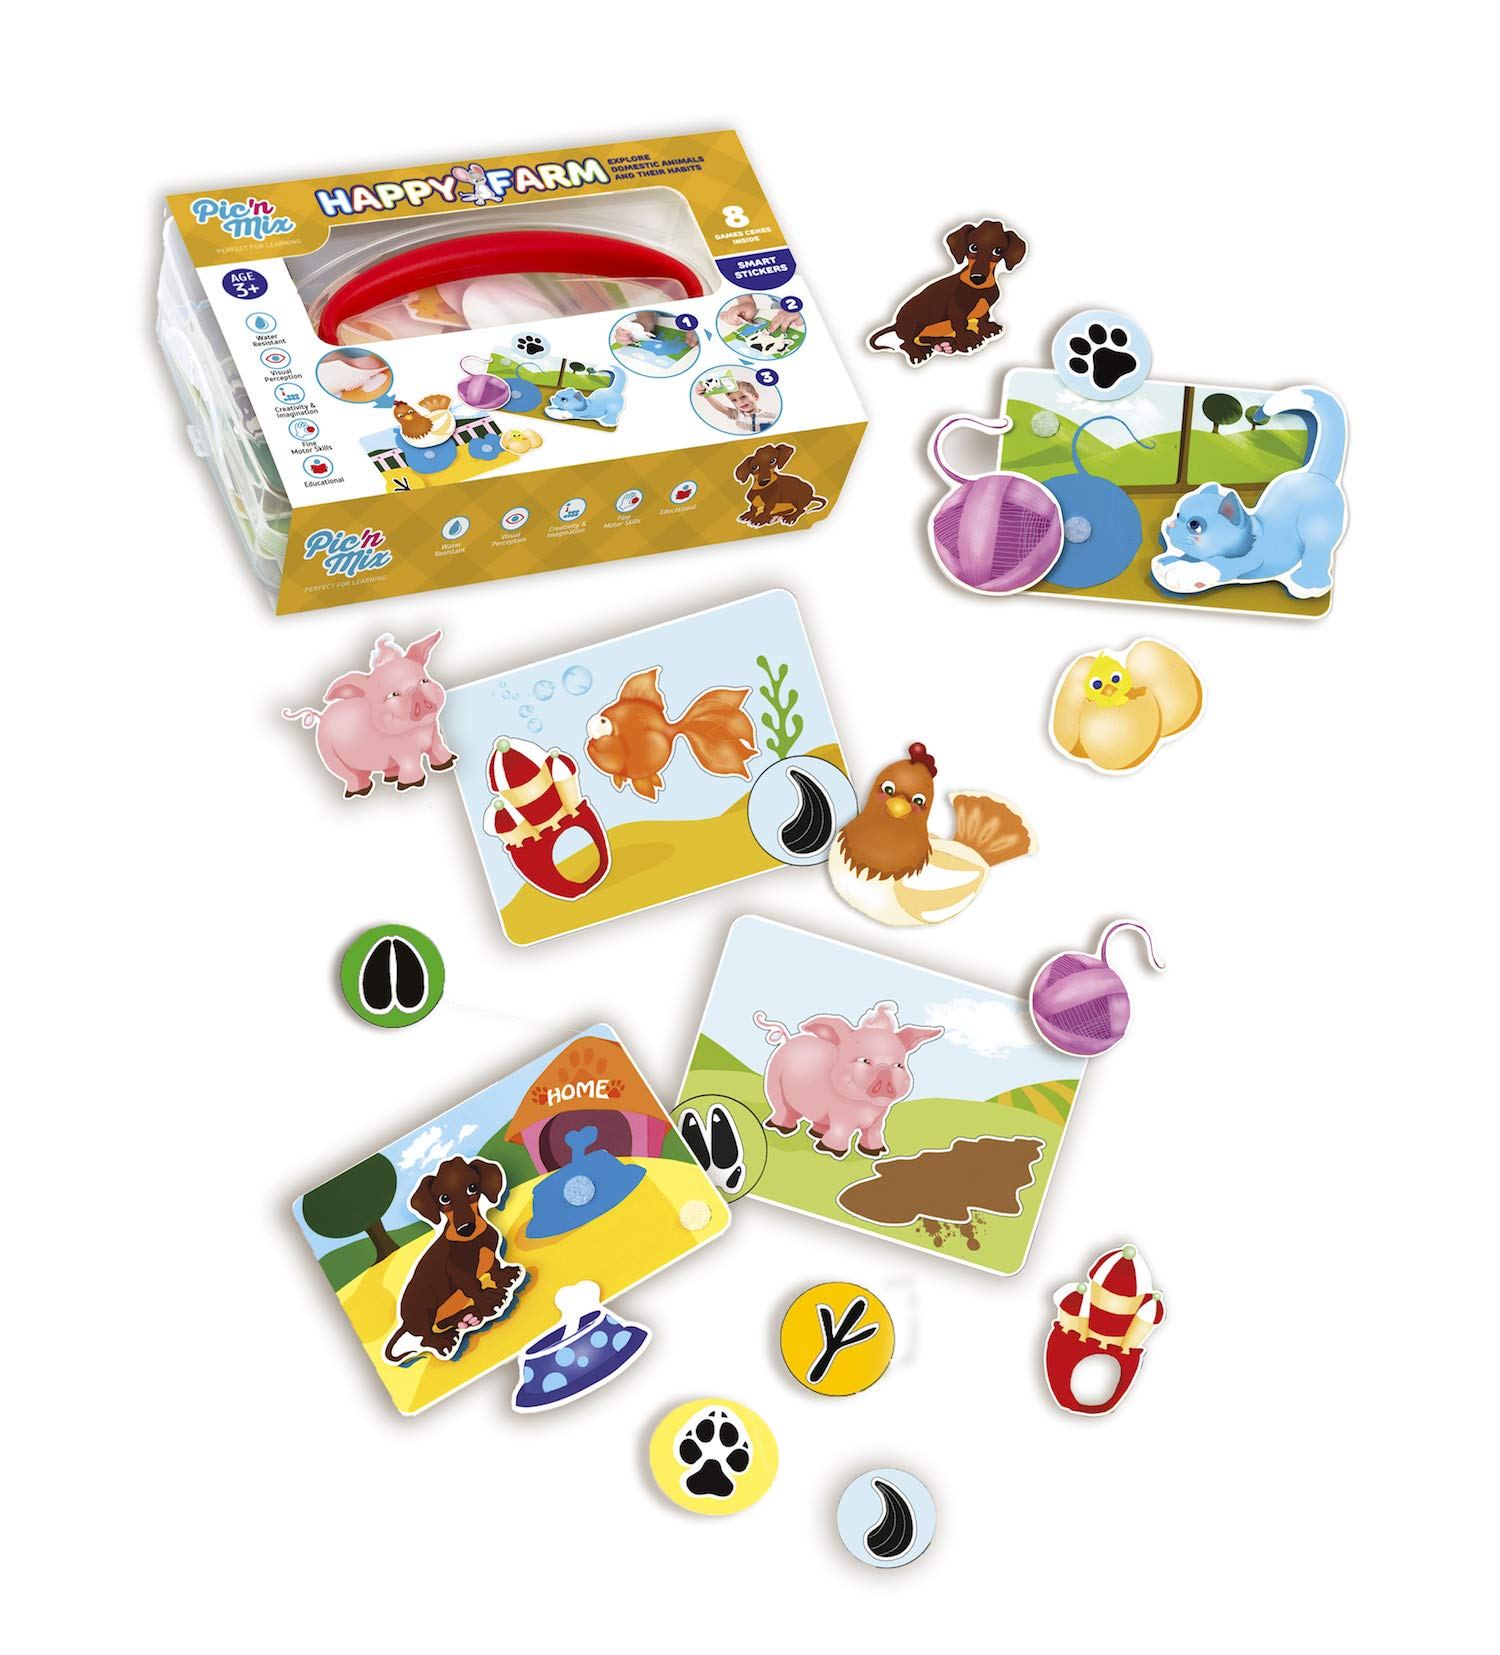 Happy Farm Game for Toddlers and Preschool Kids | Learning Sorting and Counting - Therapy Fine Motor Skills Activity. For 3 years old. Eco-Friendly made of durable plastic | Educational Puzzle Toy.